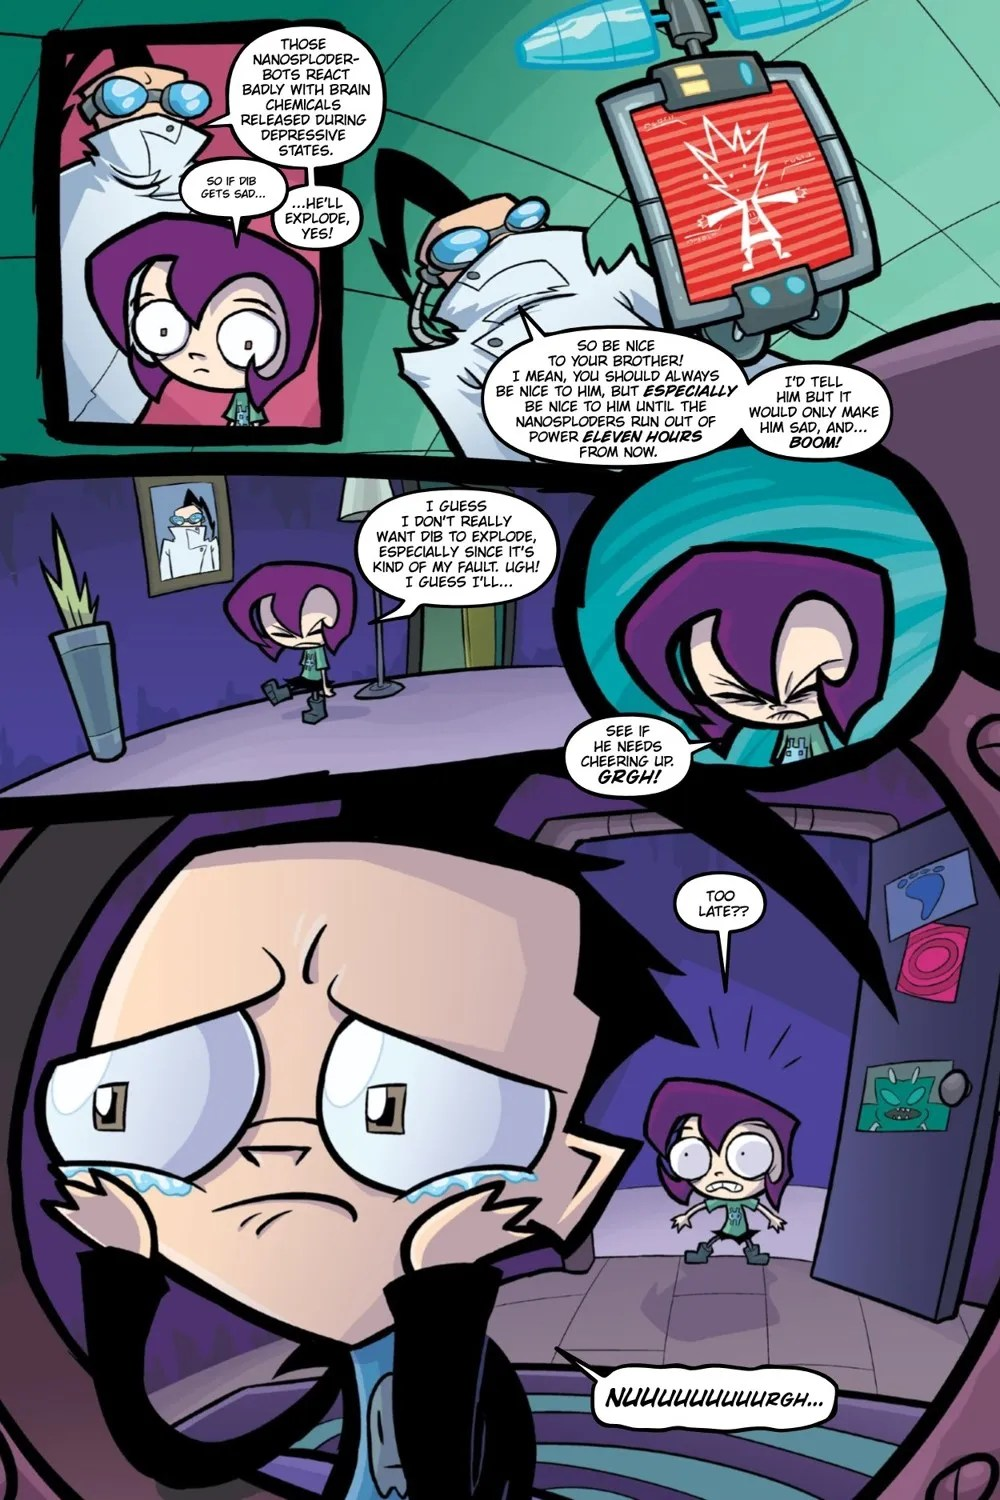 INVADERZIM-BEST-OF-CREATURES-REFERENCE-011 ComicList Previews: INVADER ZIM BEST OF CREATURES VOLUME 1 TP